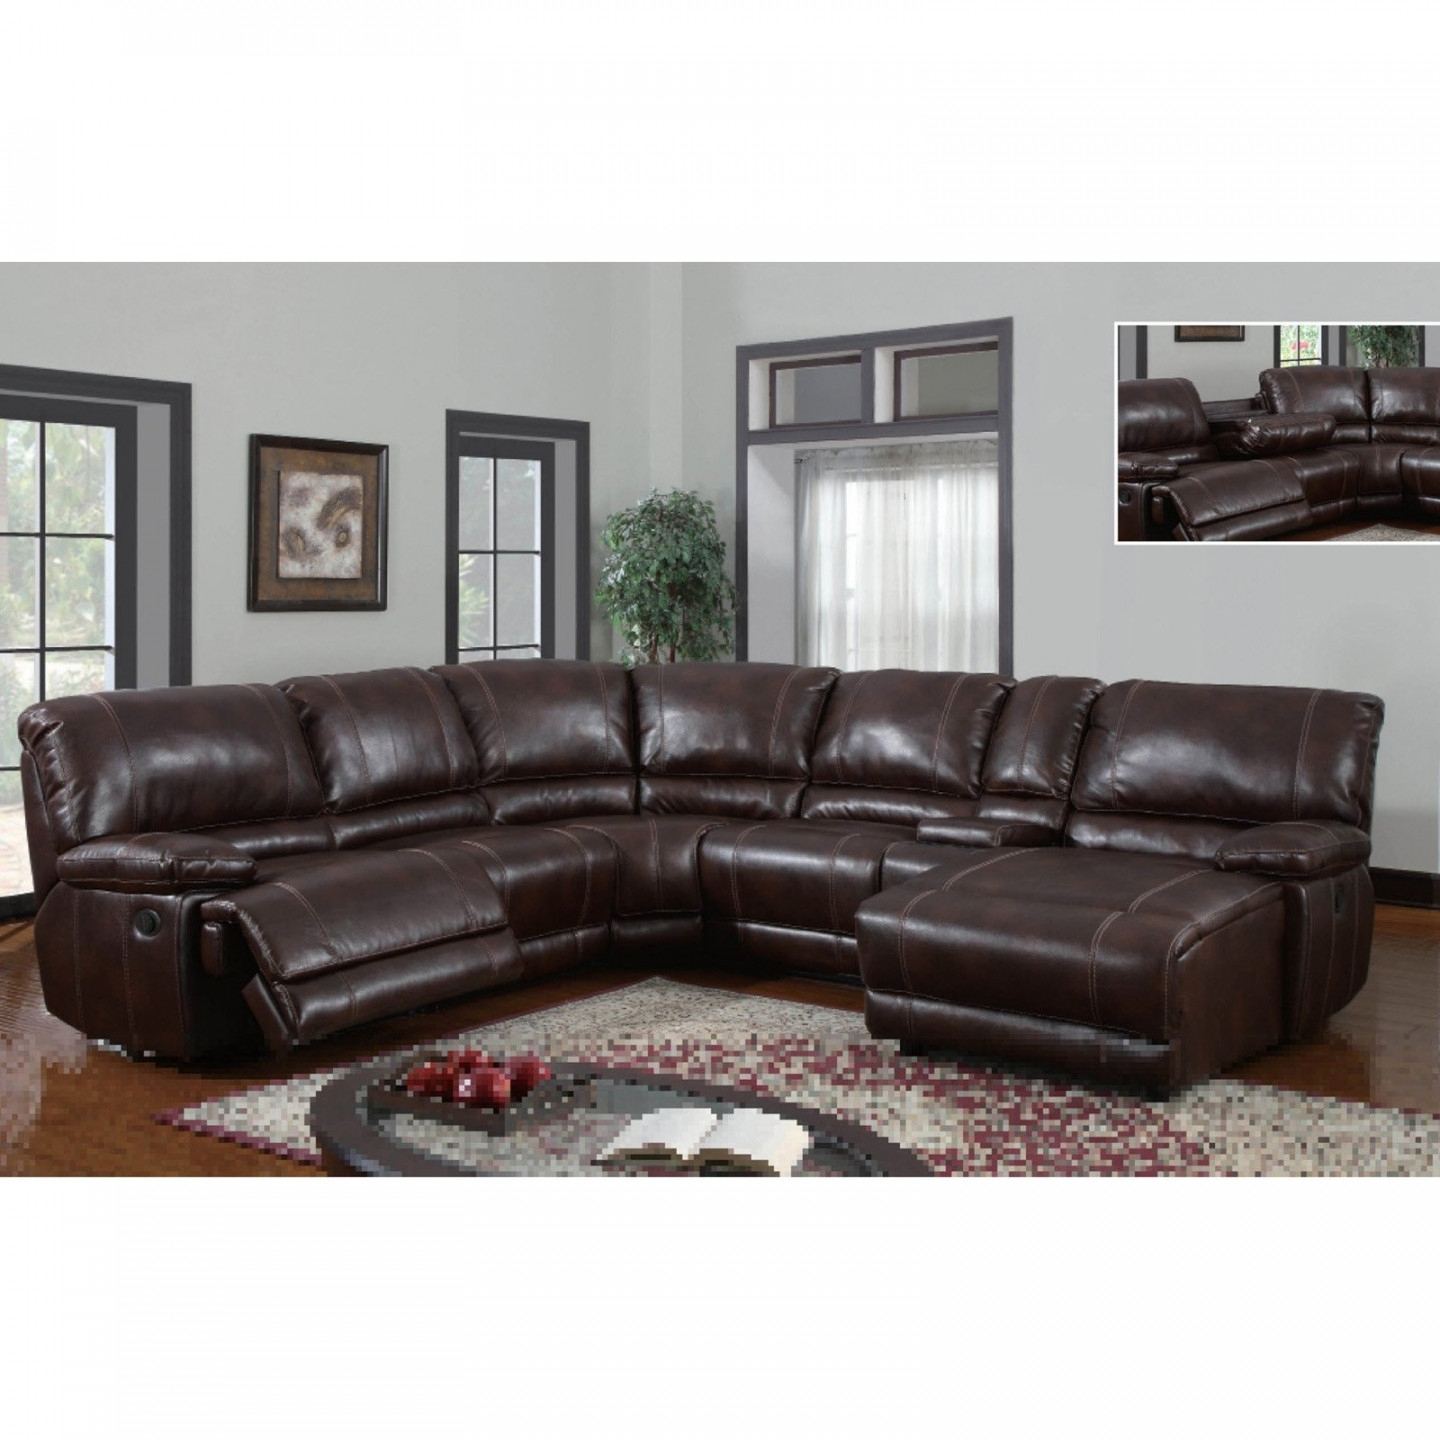 Leather Sectional Sofa With Power Recliner 11 With Leather | Home Inside Sectional Sofas With Power Recliners (Image 4 of 10)